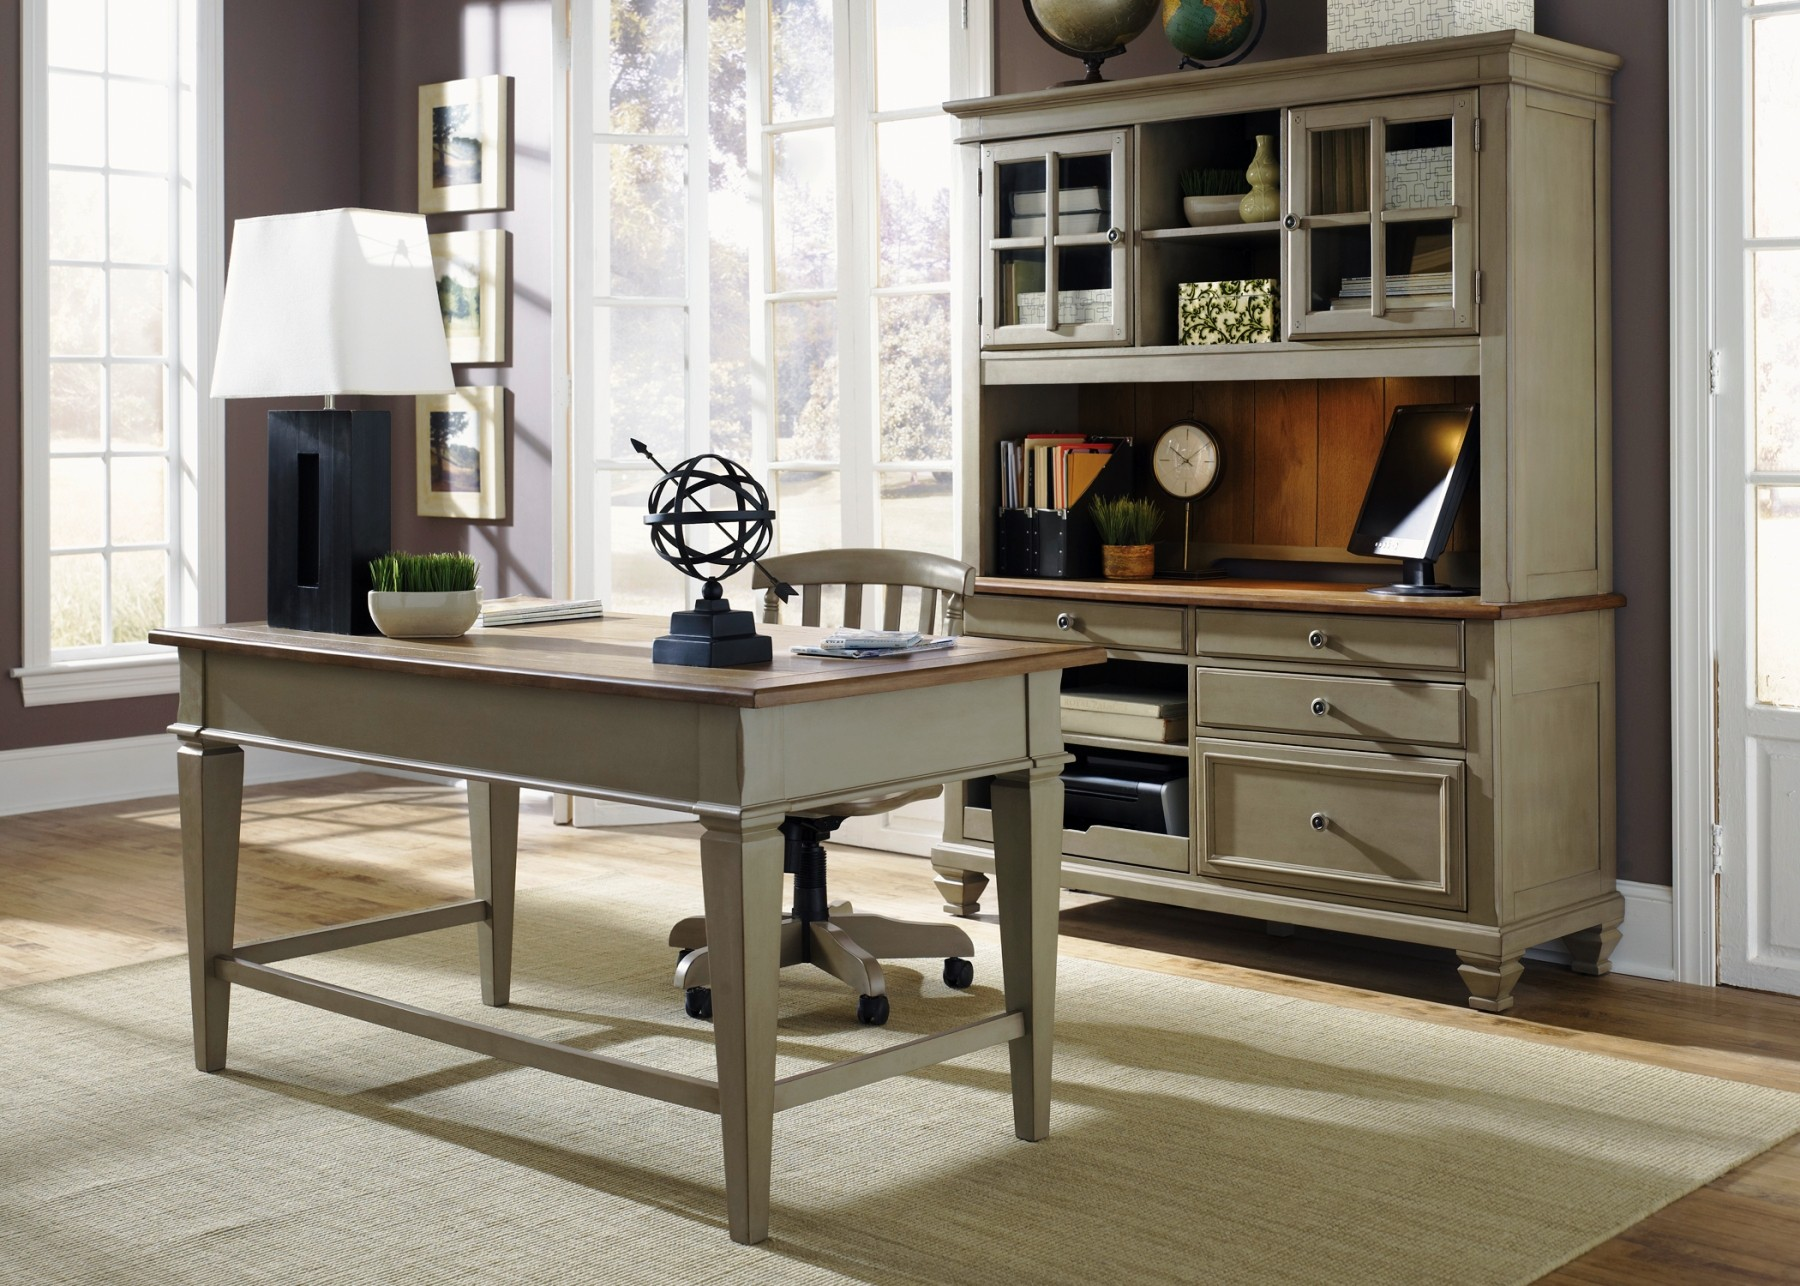 Bungalow taupe jr executive home office set from liberty 541 ho120 coleman furniture - Home office furniture set ...